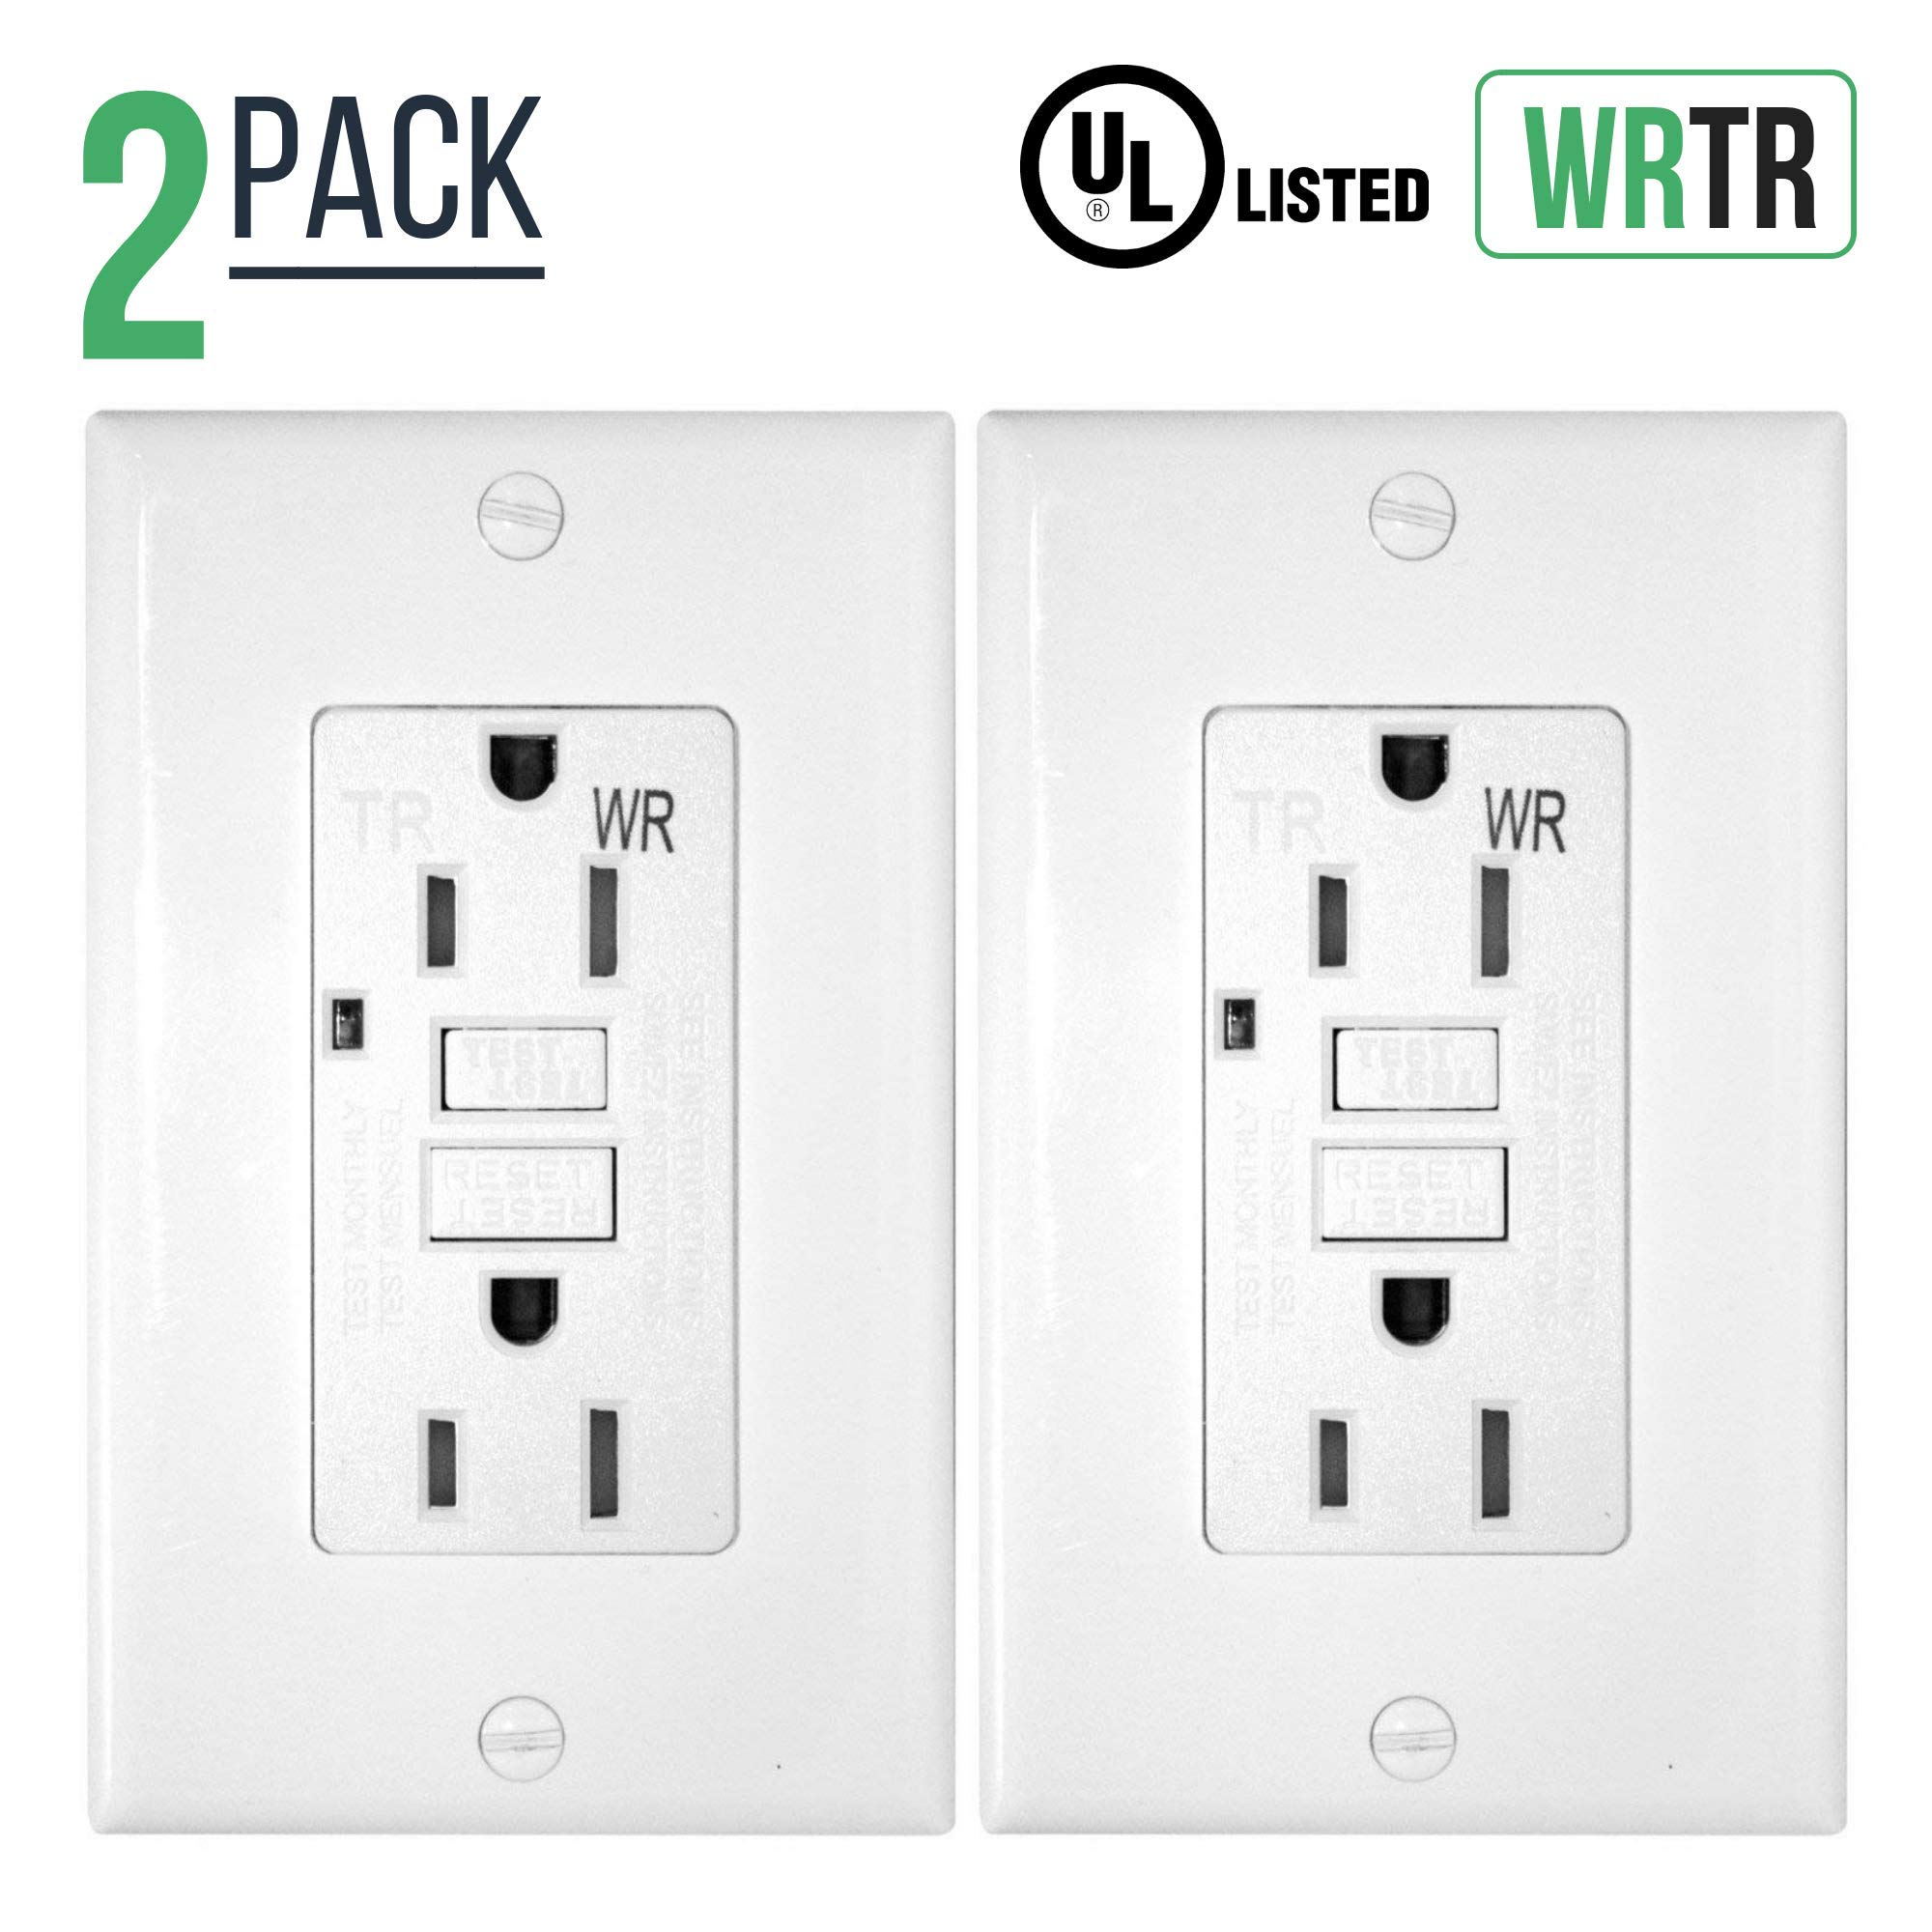 15 Amp GFCI GFI Receptacle, Duplex Wall outlet, Weather Resistant (WR), Tamper Proof (TR), Self-Testing, Use Indoor & Outdoor, White (2)